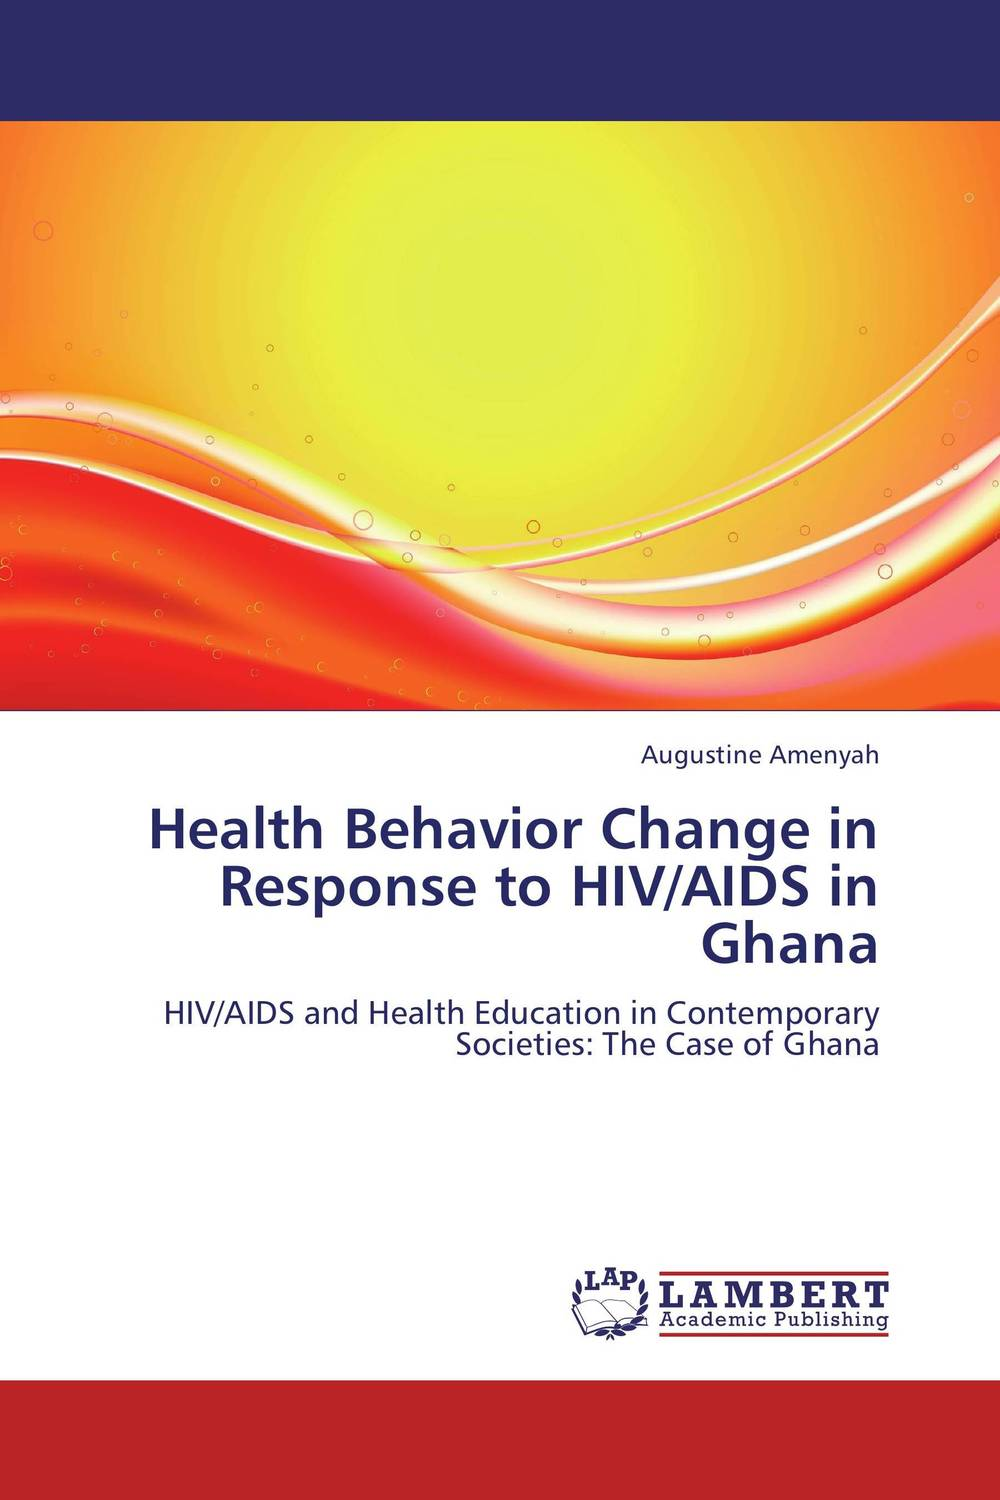 цена на Health Behavior Change in Response to HIV/AIDS in Ghana